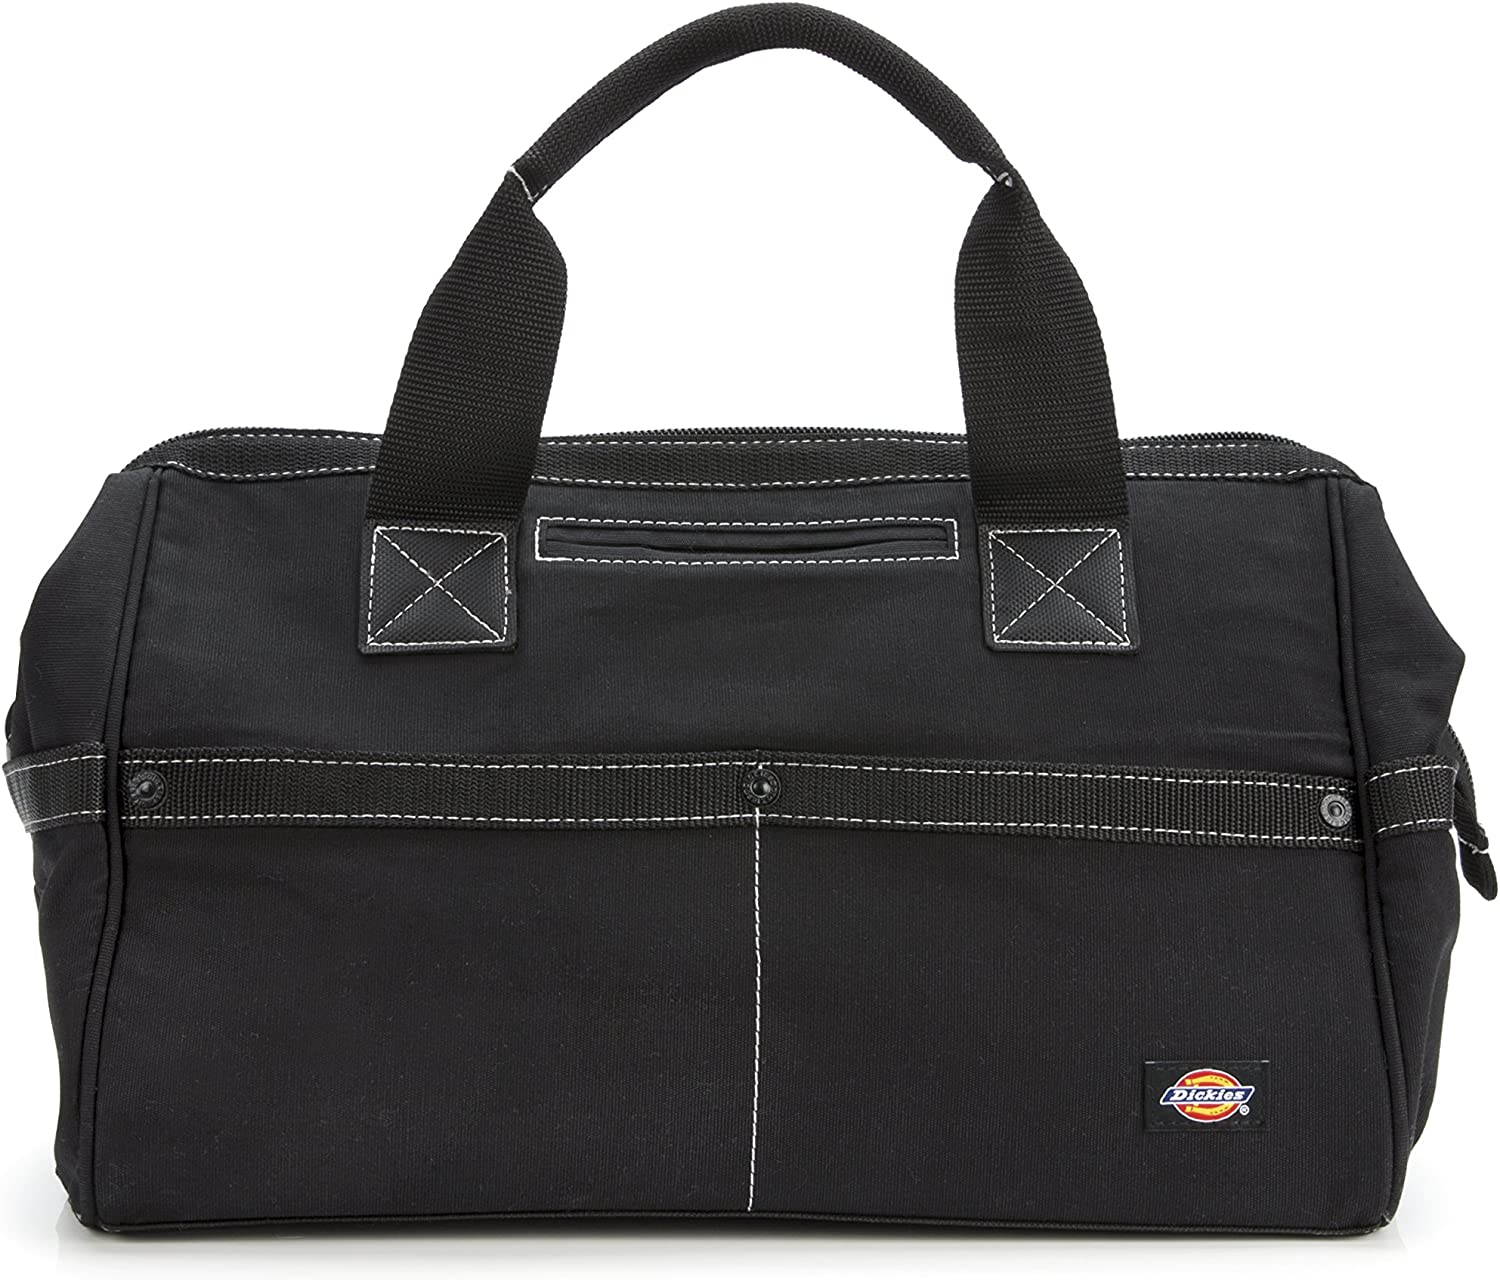 Dickies 16-Inch Durable Canvas Work Bag for Painters, Carpenters, and Builders, Heavy-Duty Zipper, Reinforced Handles, Exterior Pockets, Black